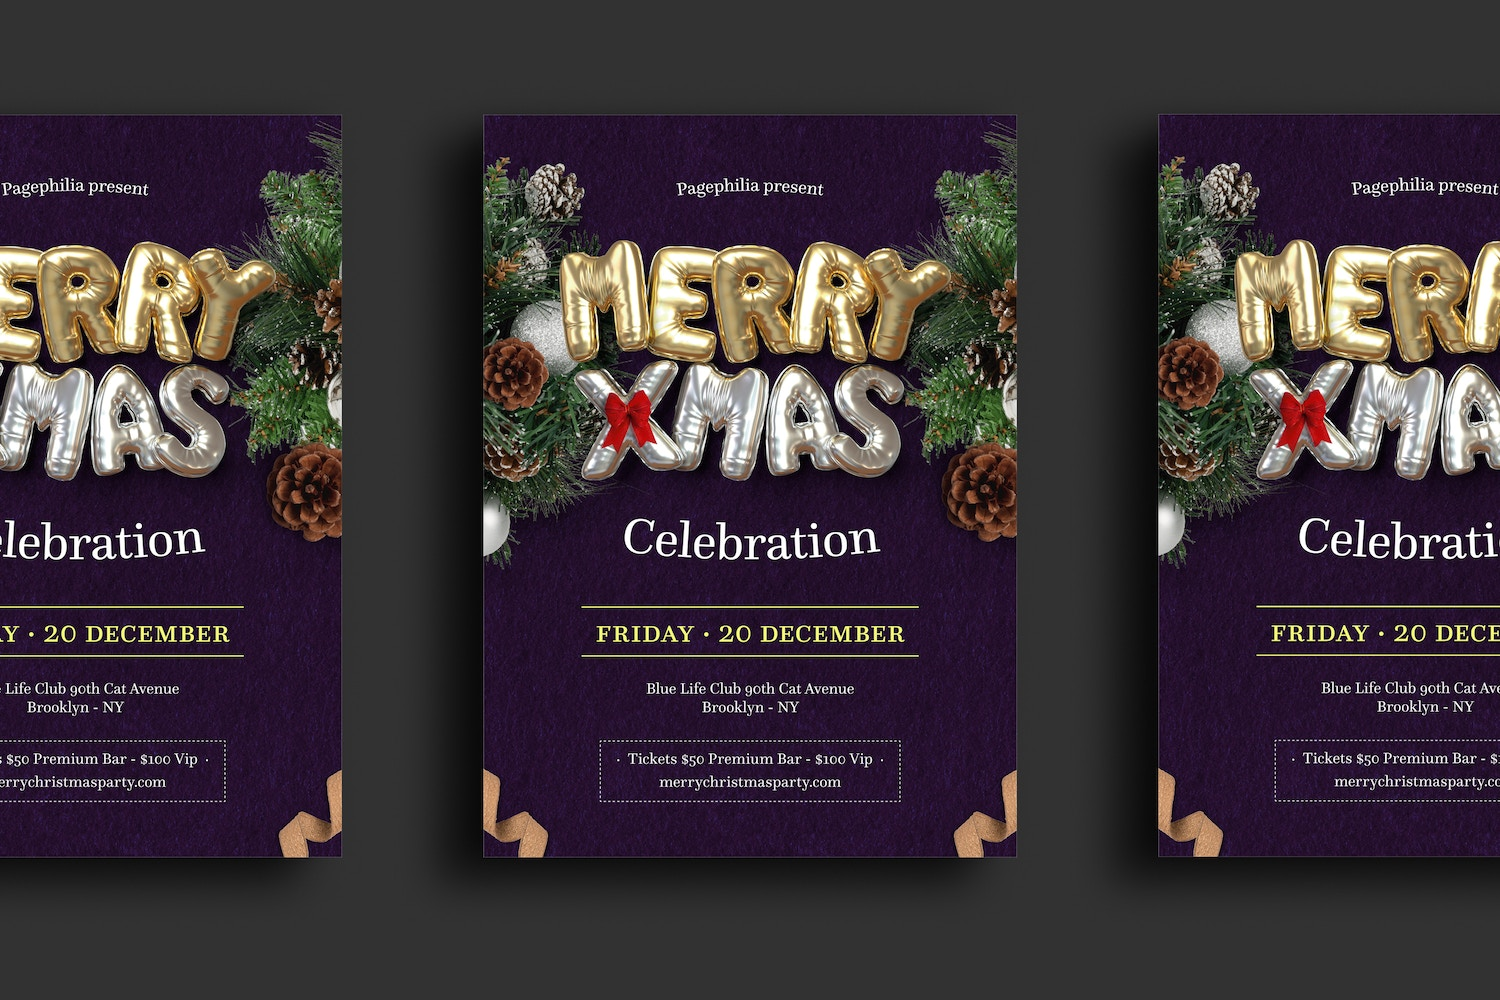 Balloon Party, Christmas Flyer Template 3 by Original Mockups on Original Mockups